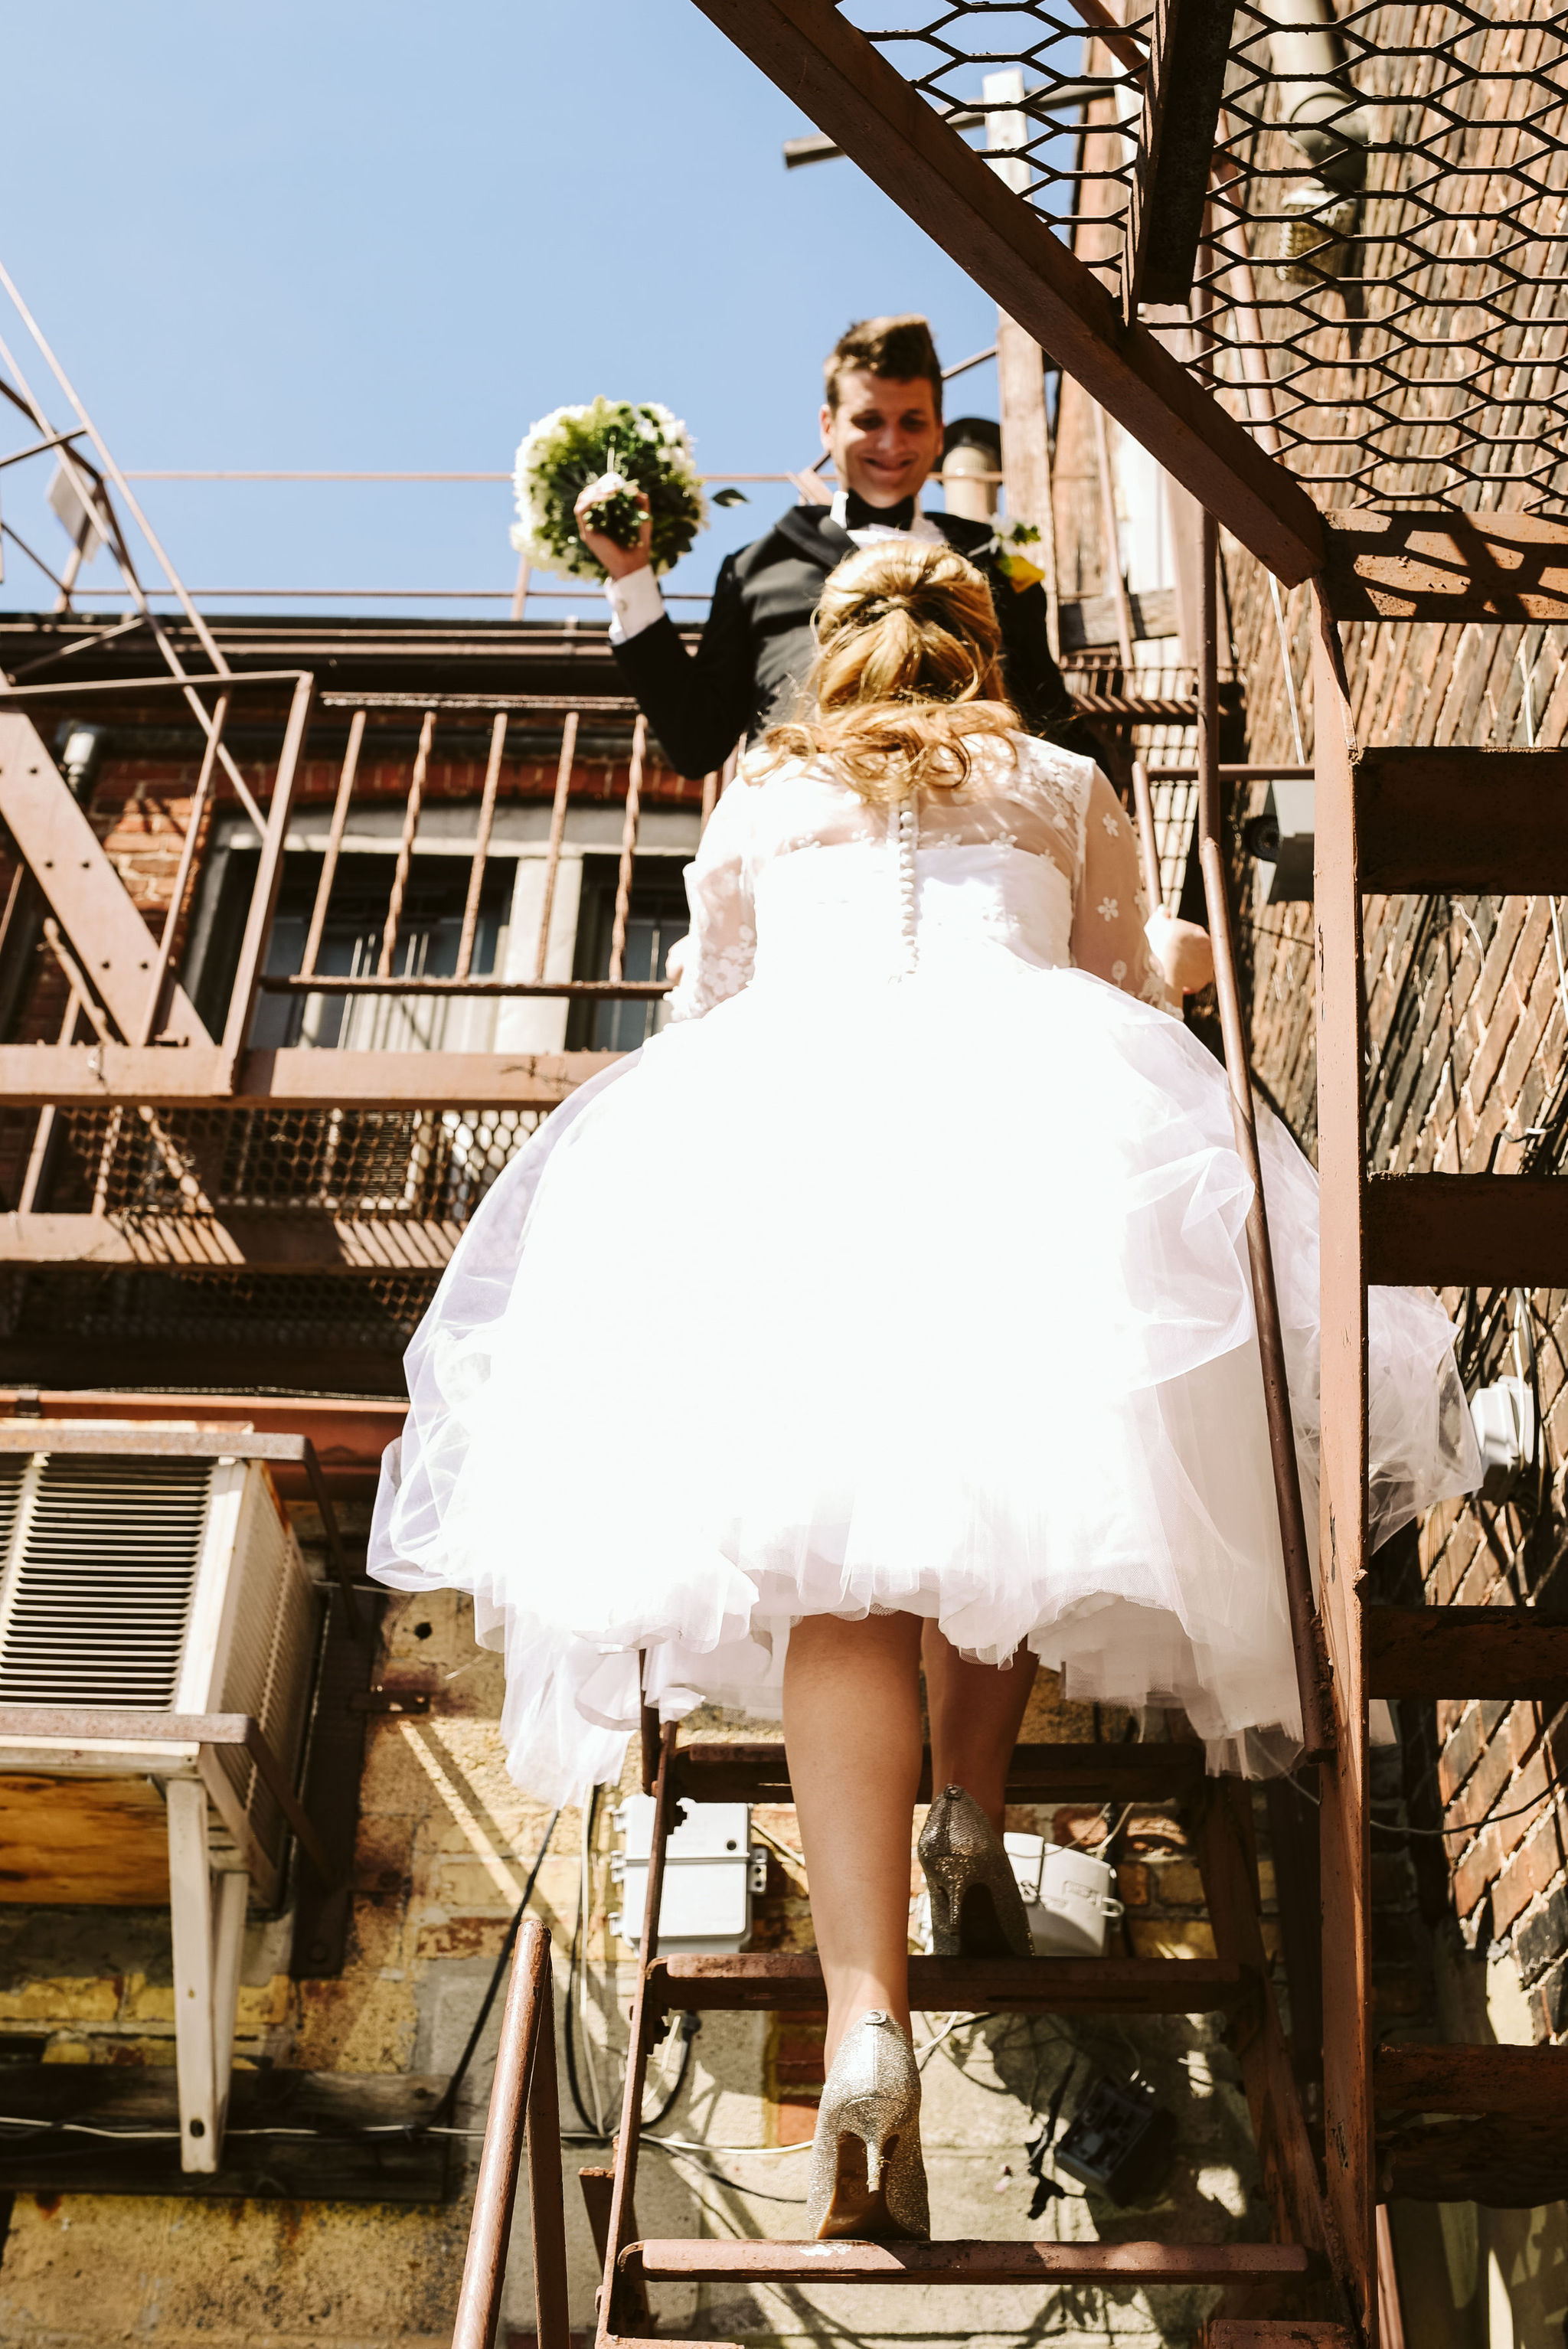 Baltimore, Church Wedding, Maryland Wedding Photographer, Vintage, Classic, 50s Style, Bride and Groom on Fire Escape, Outdoor, Glitter Heels